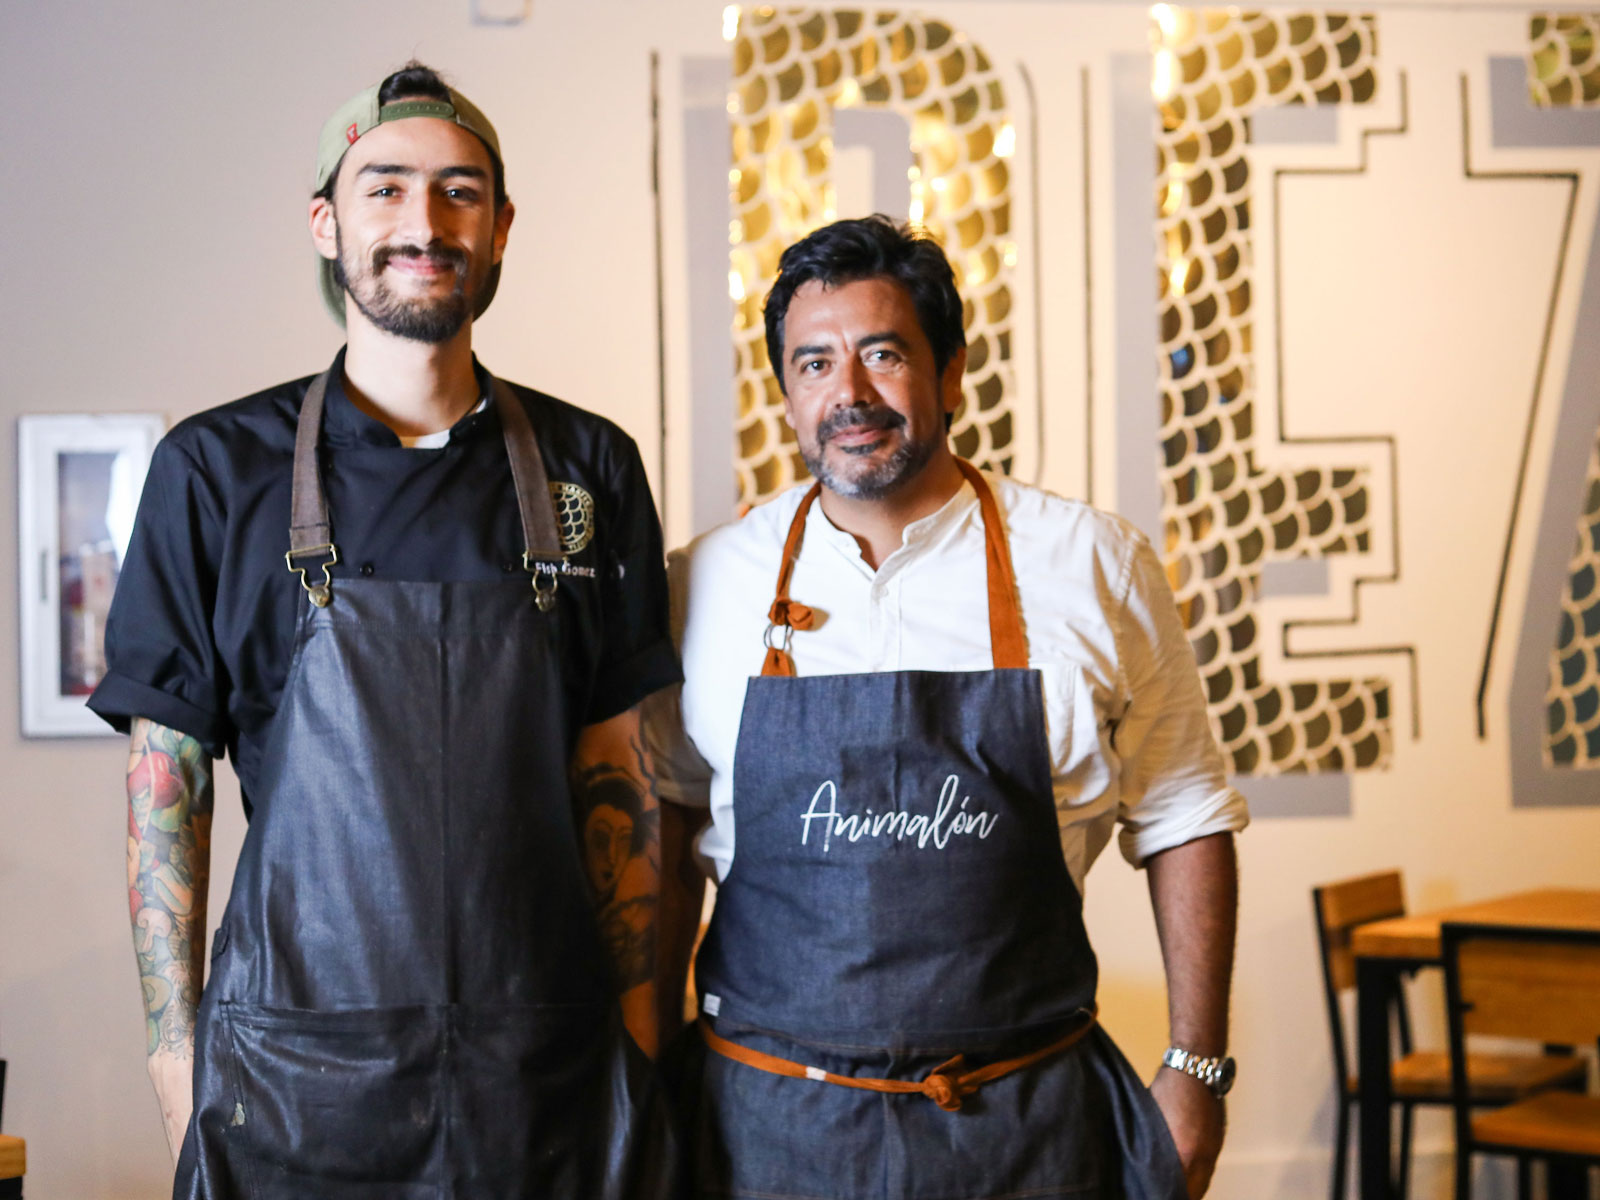 Award-Winning Chef Javier Plascencia Brings Upscale Tijuana Cooking to Miami